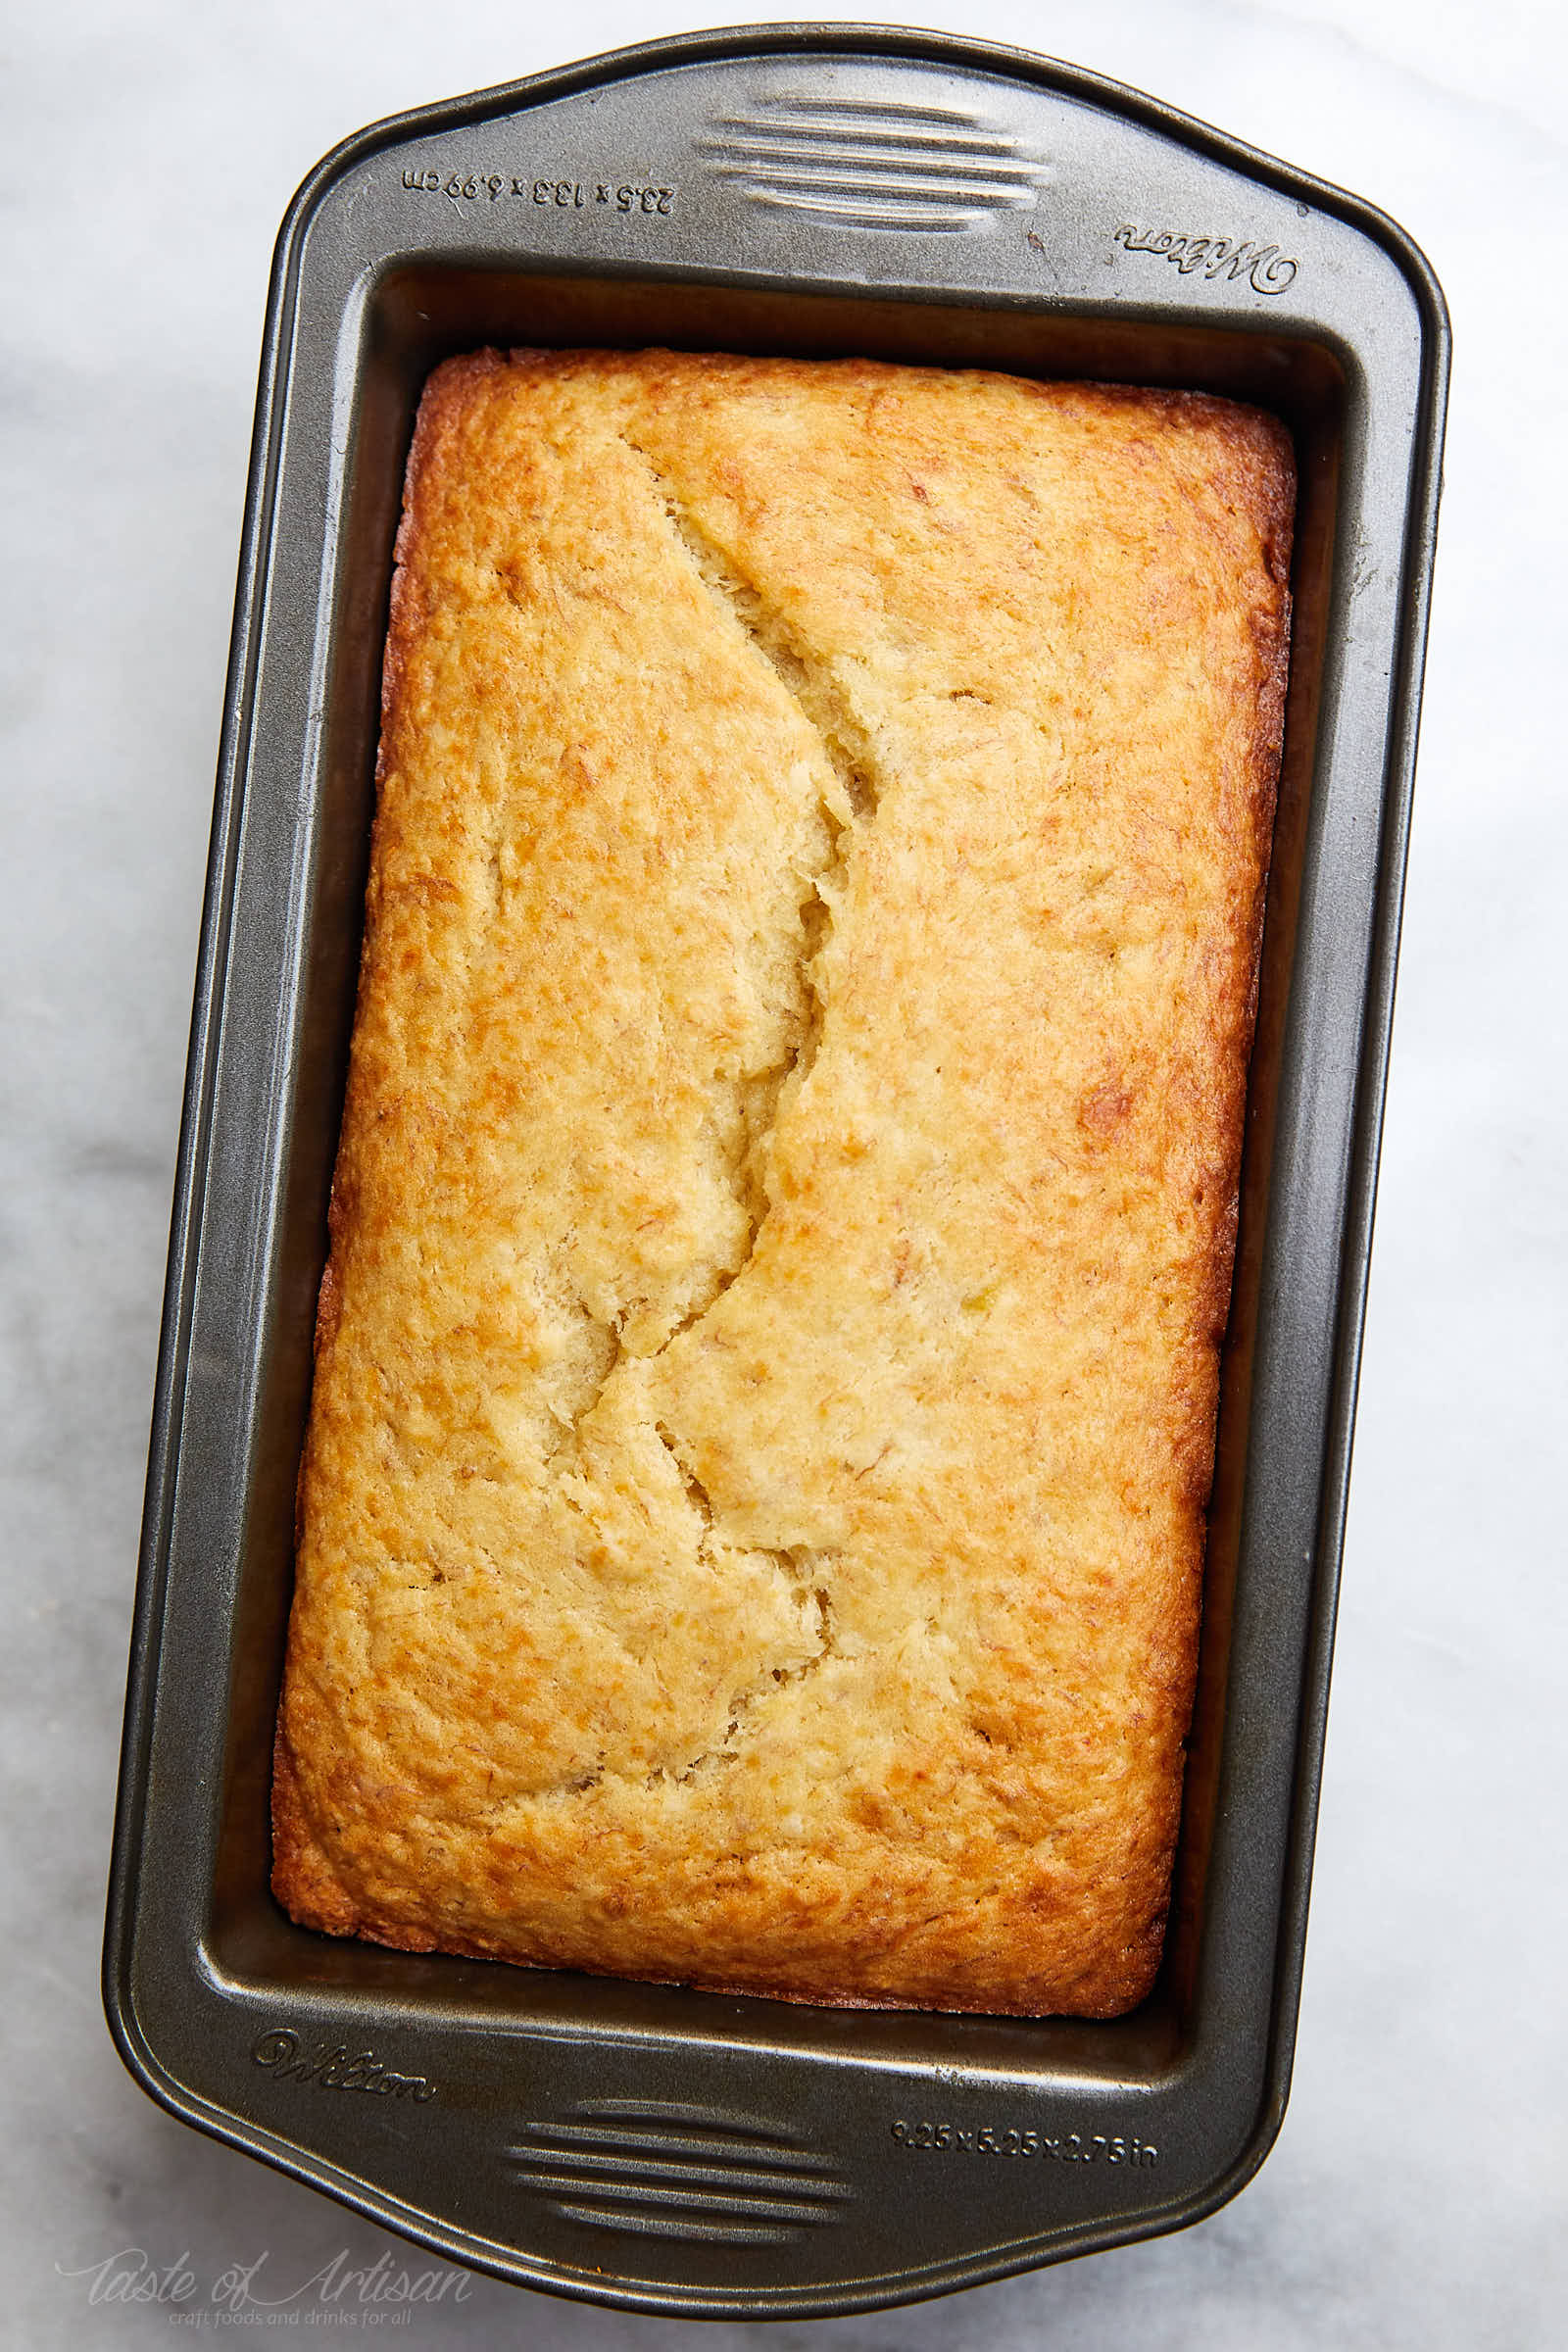 Best tasting Banana Bread ever! No need for a mixer! Delicious, moist and simple classic banana bread recipe. | Taste of Artisan